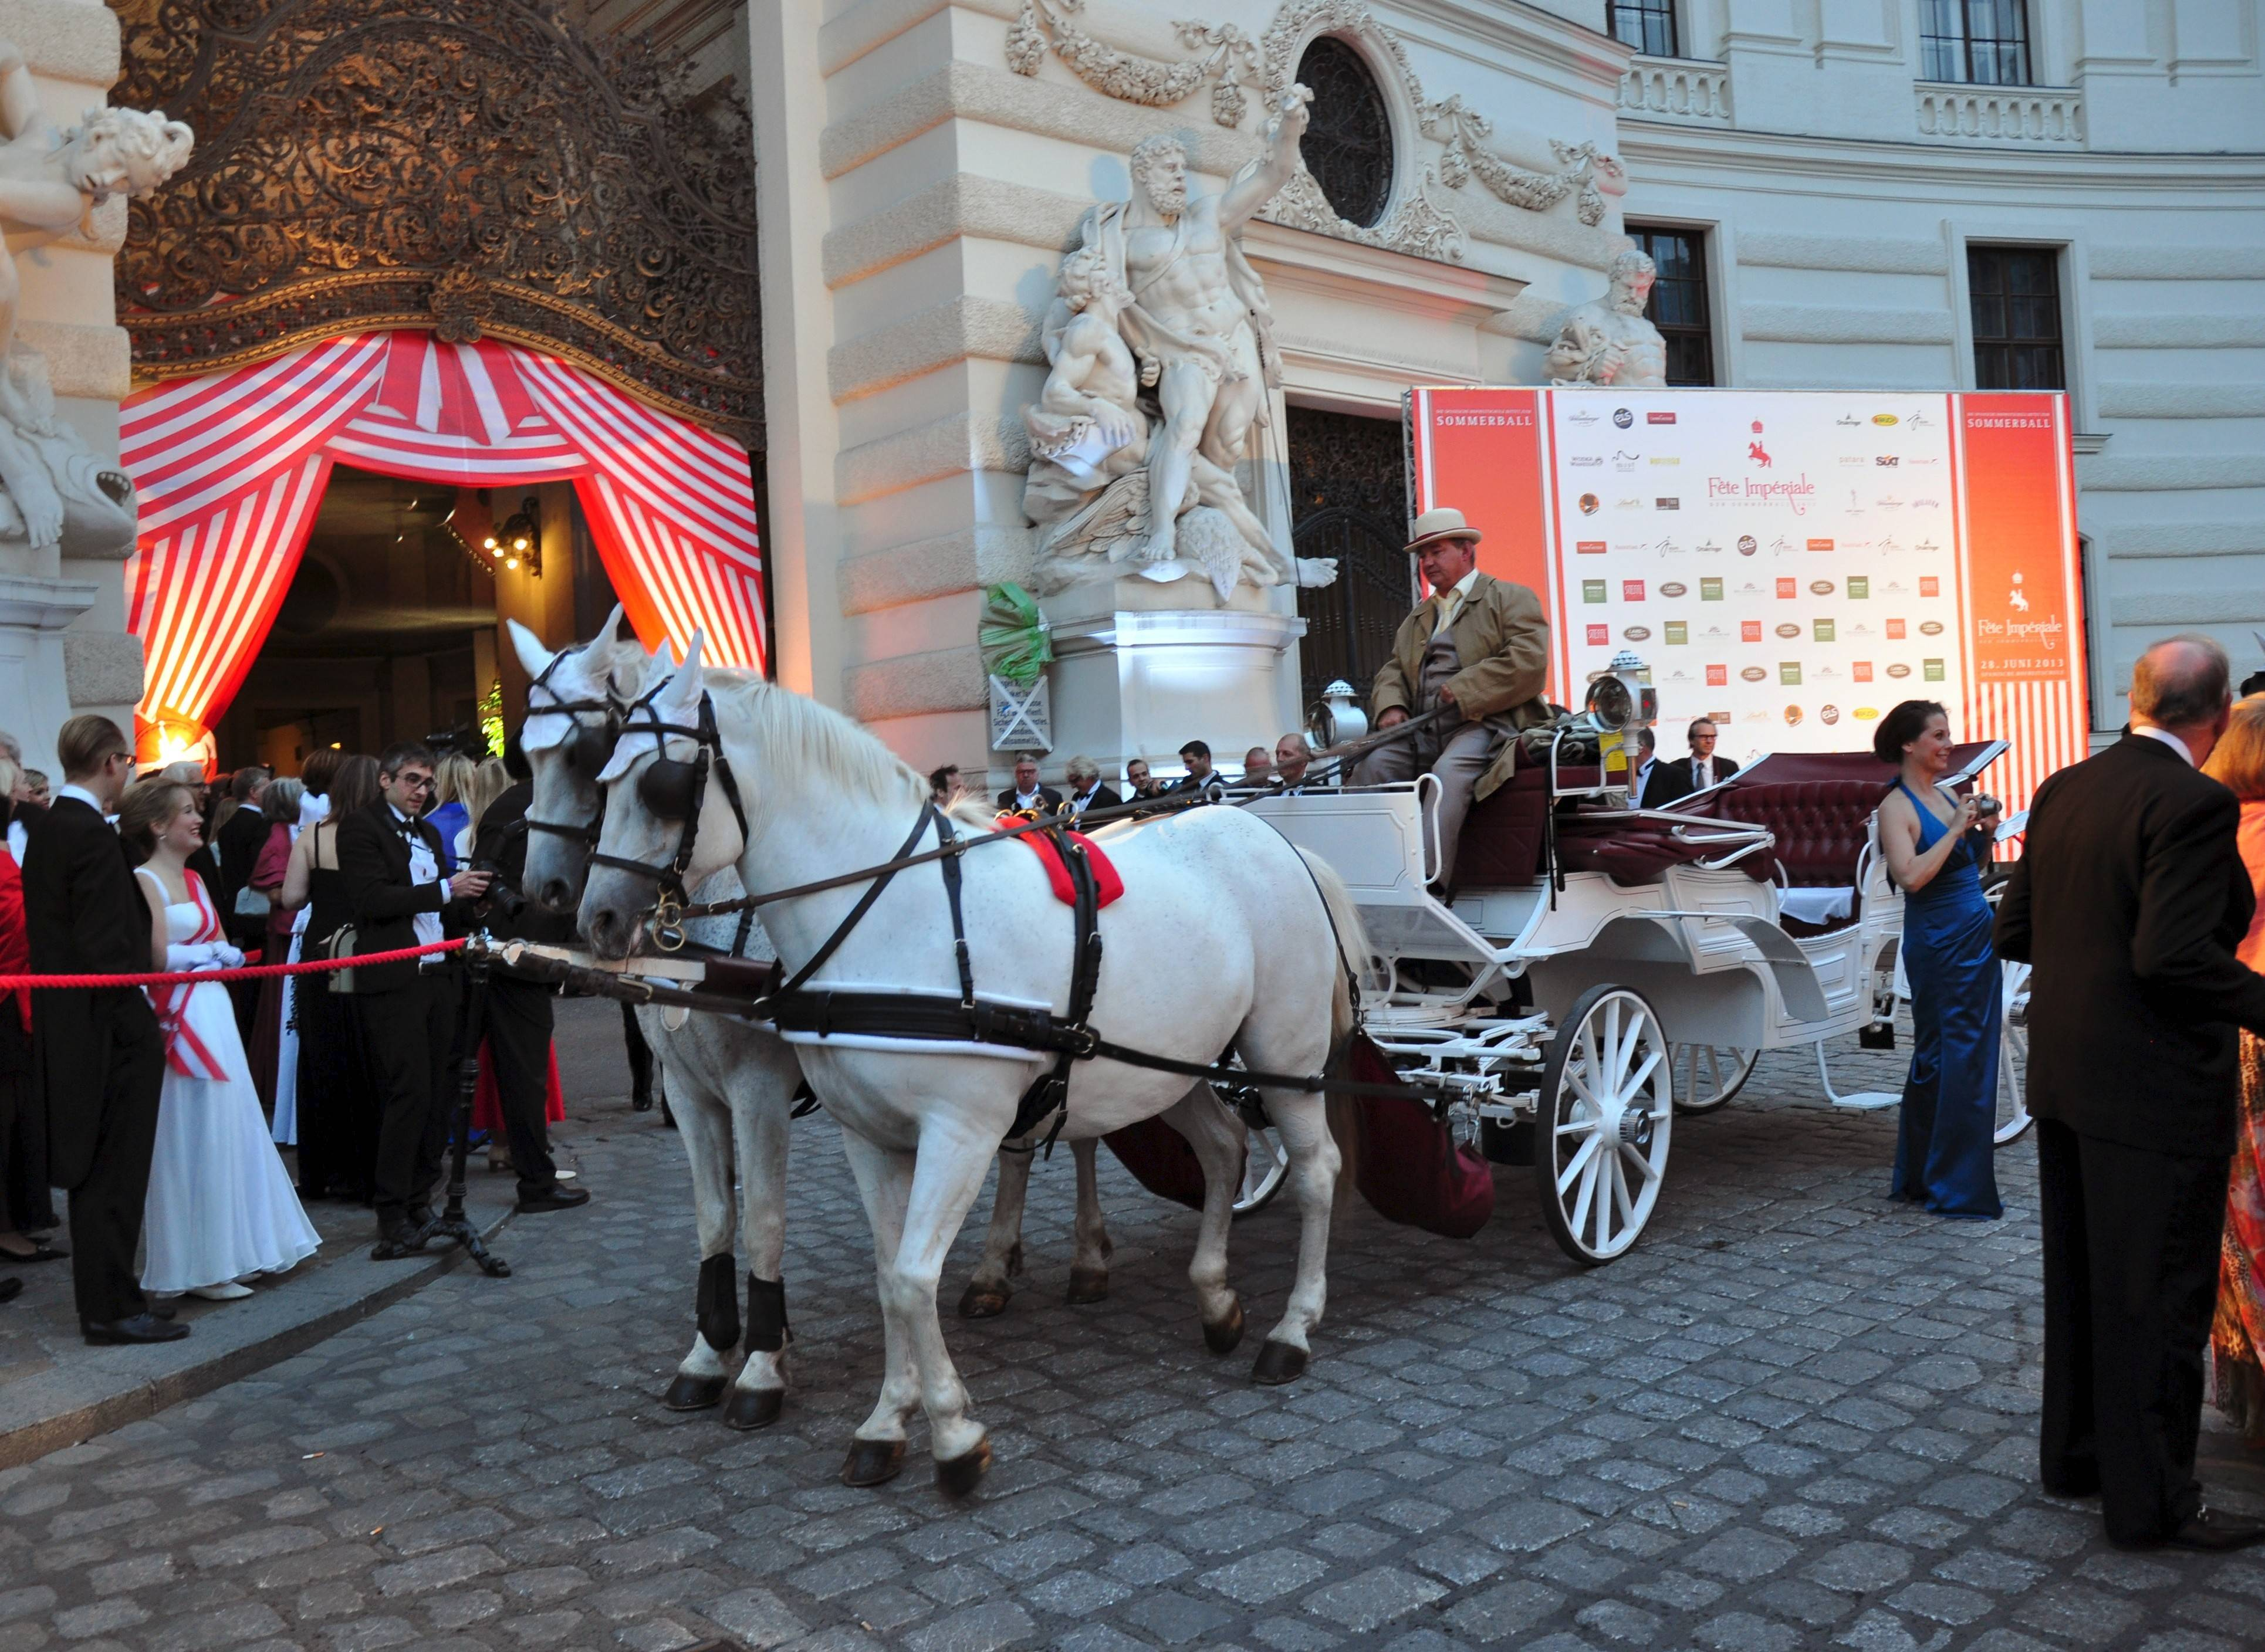 Horse-drawn carriages transport ball goers to the Hofburg Palace for the Fete Imperiale in Vienna, Austria.